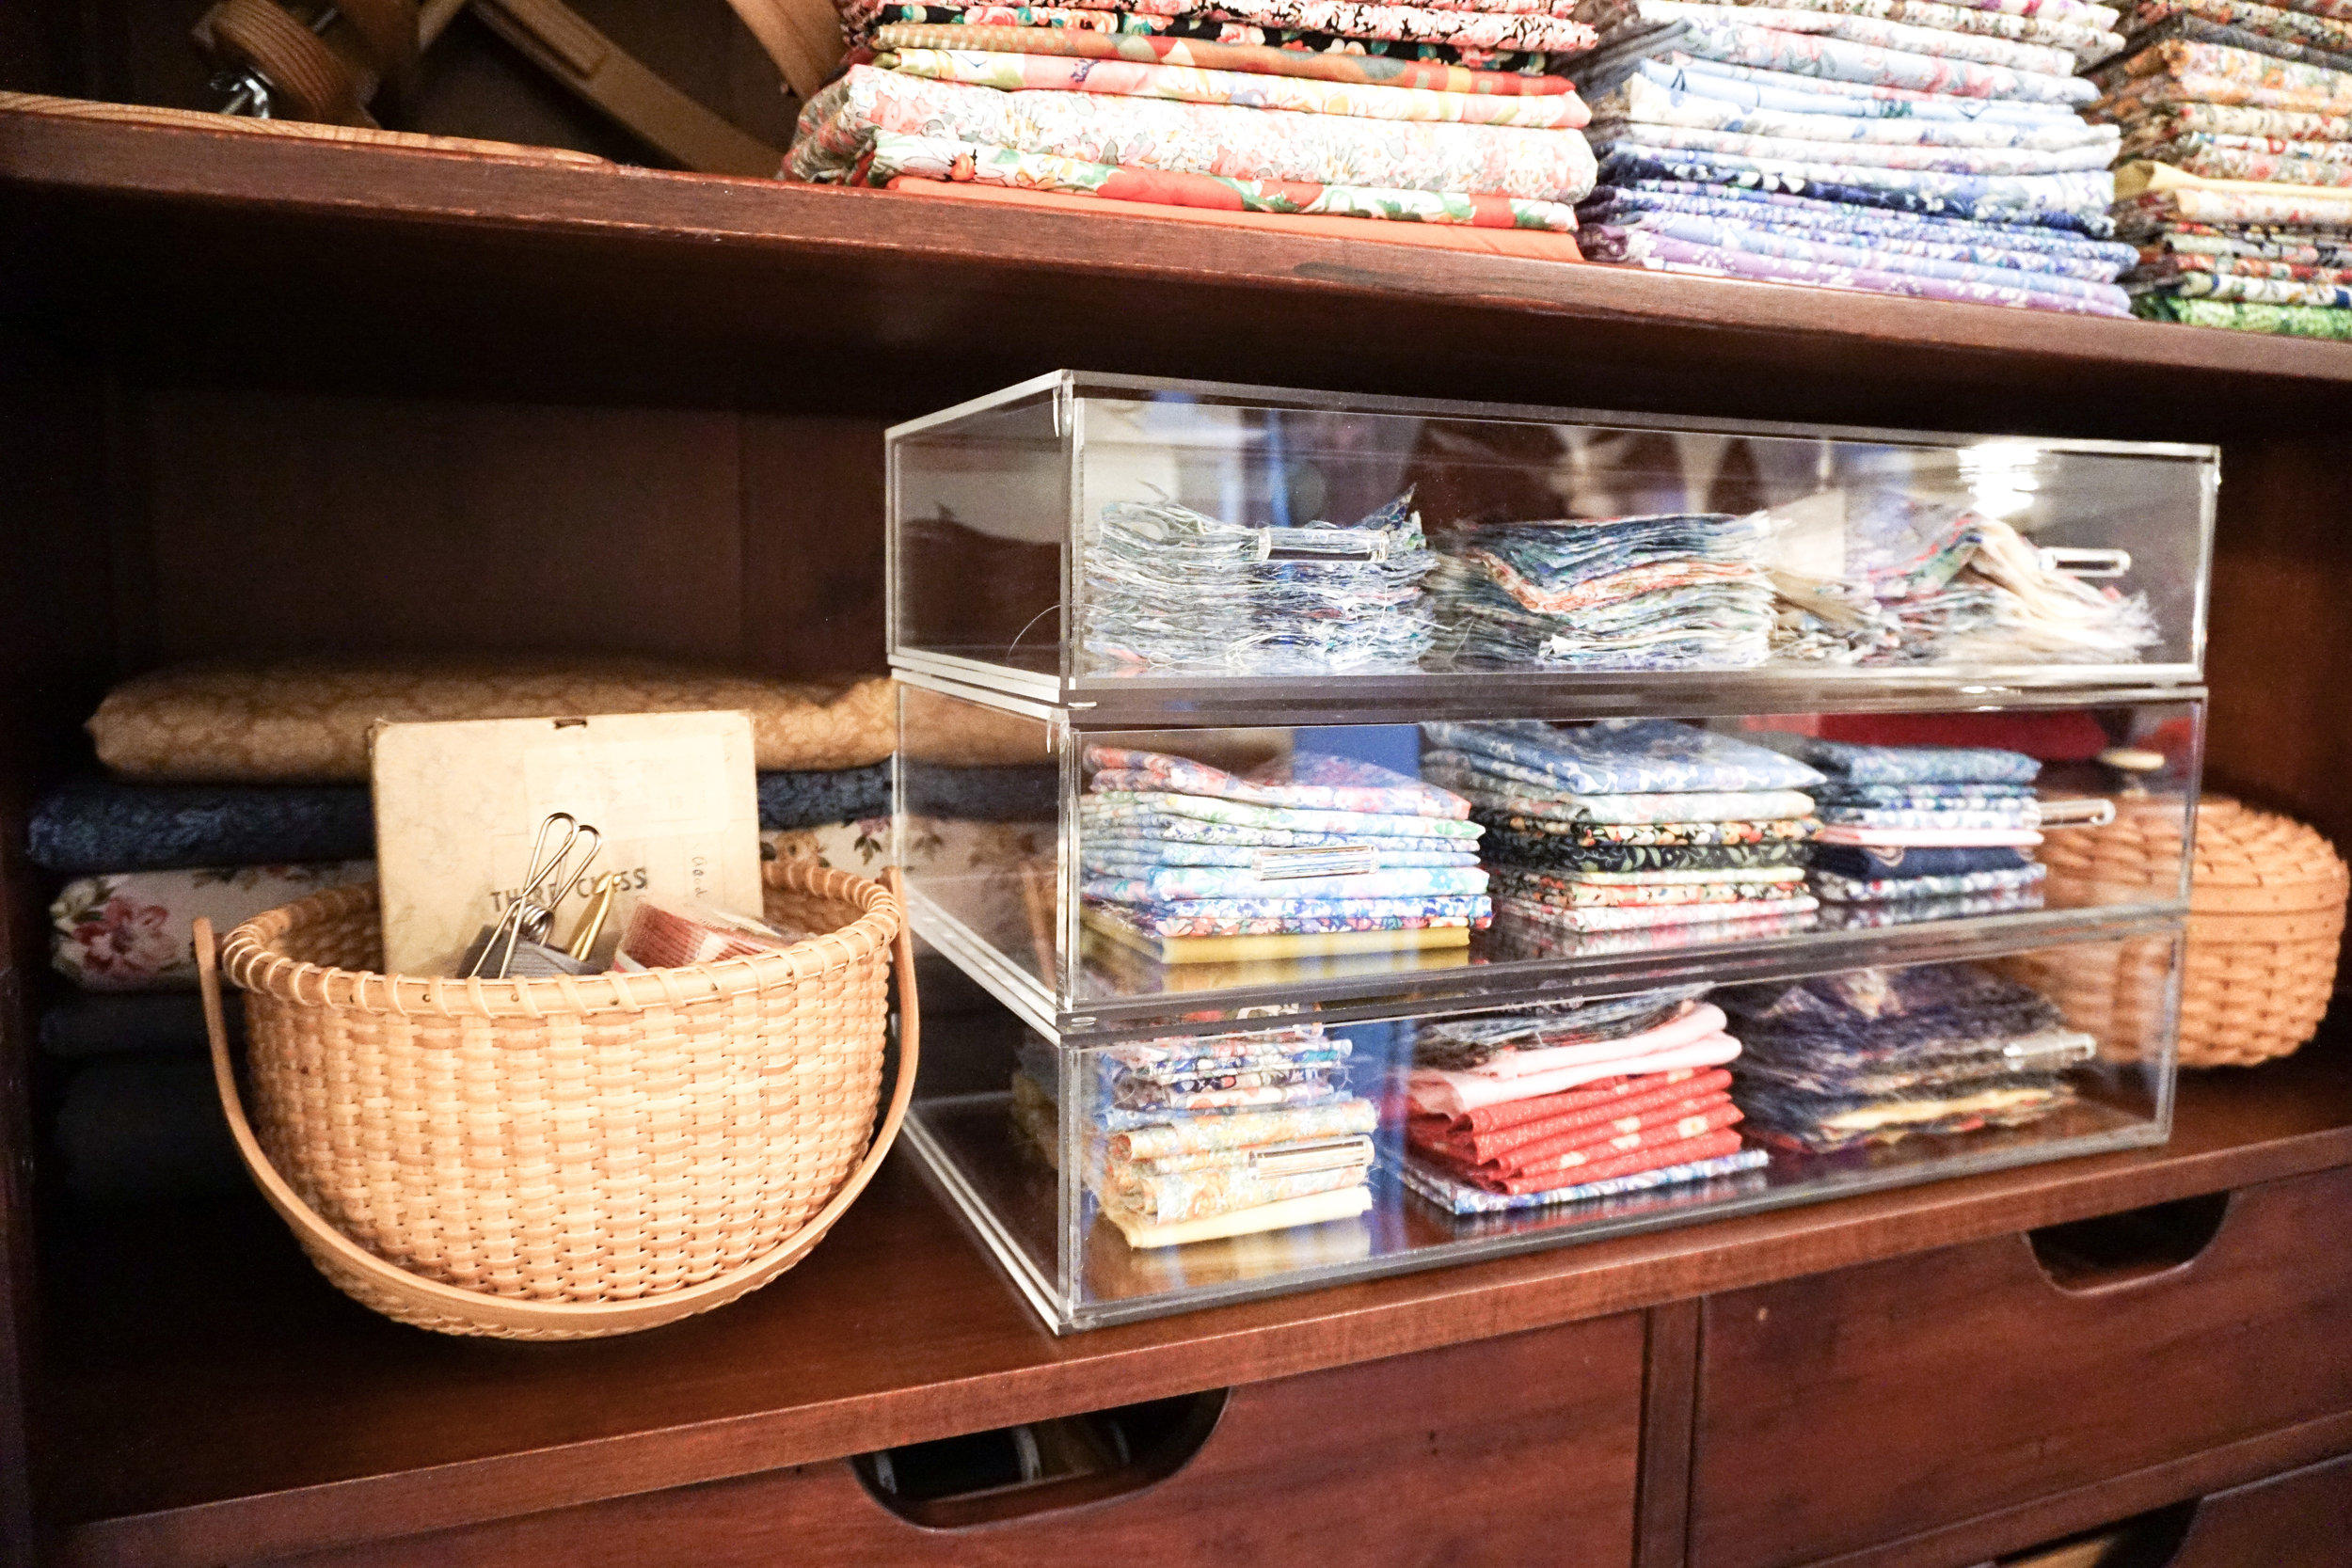 House of Turk | Sewing Room Organization